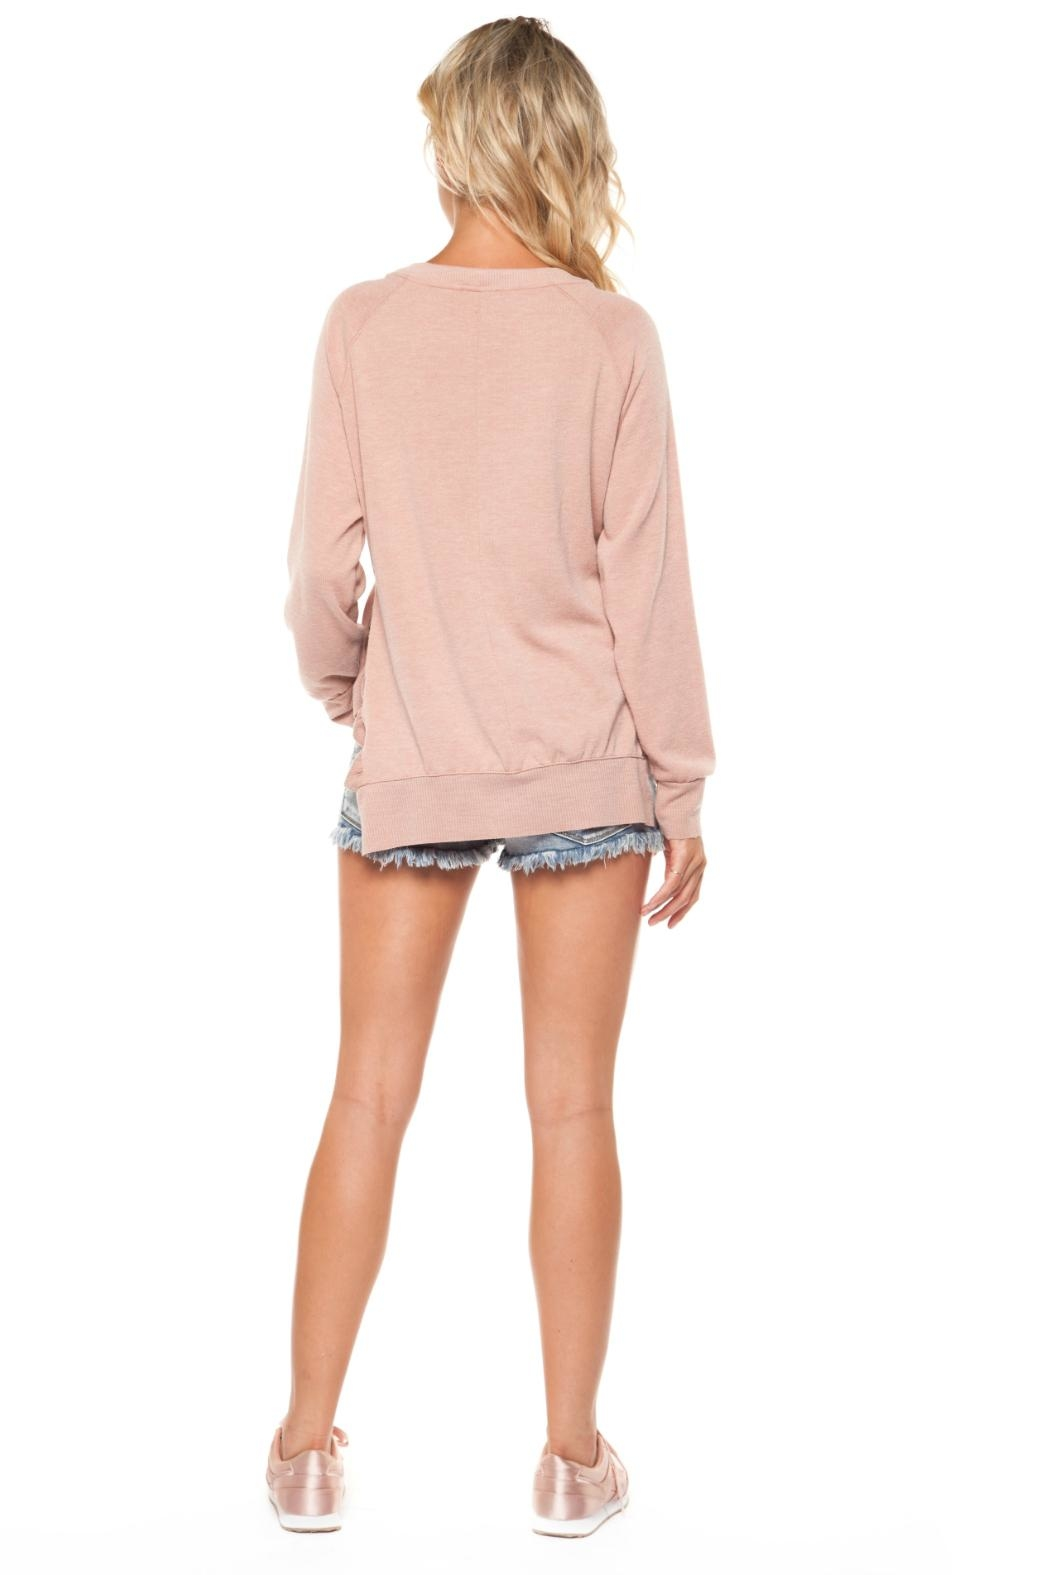 Dex Pink Ruffle Sweater - Side Cropped Image